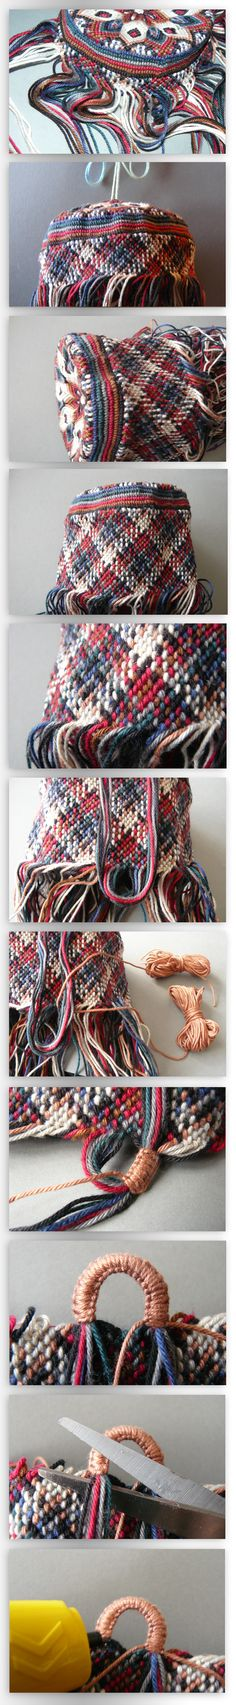 pouch_tutorial_part_iv__body_and_loops__by_nimuae-d5b6e2w.png (600×4335)